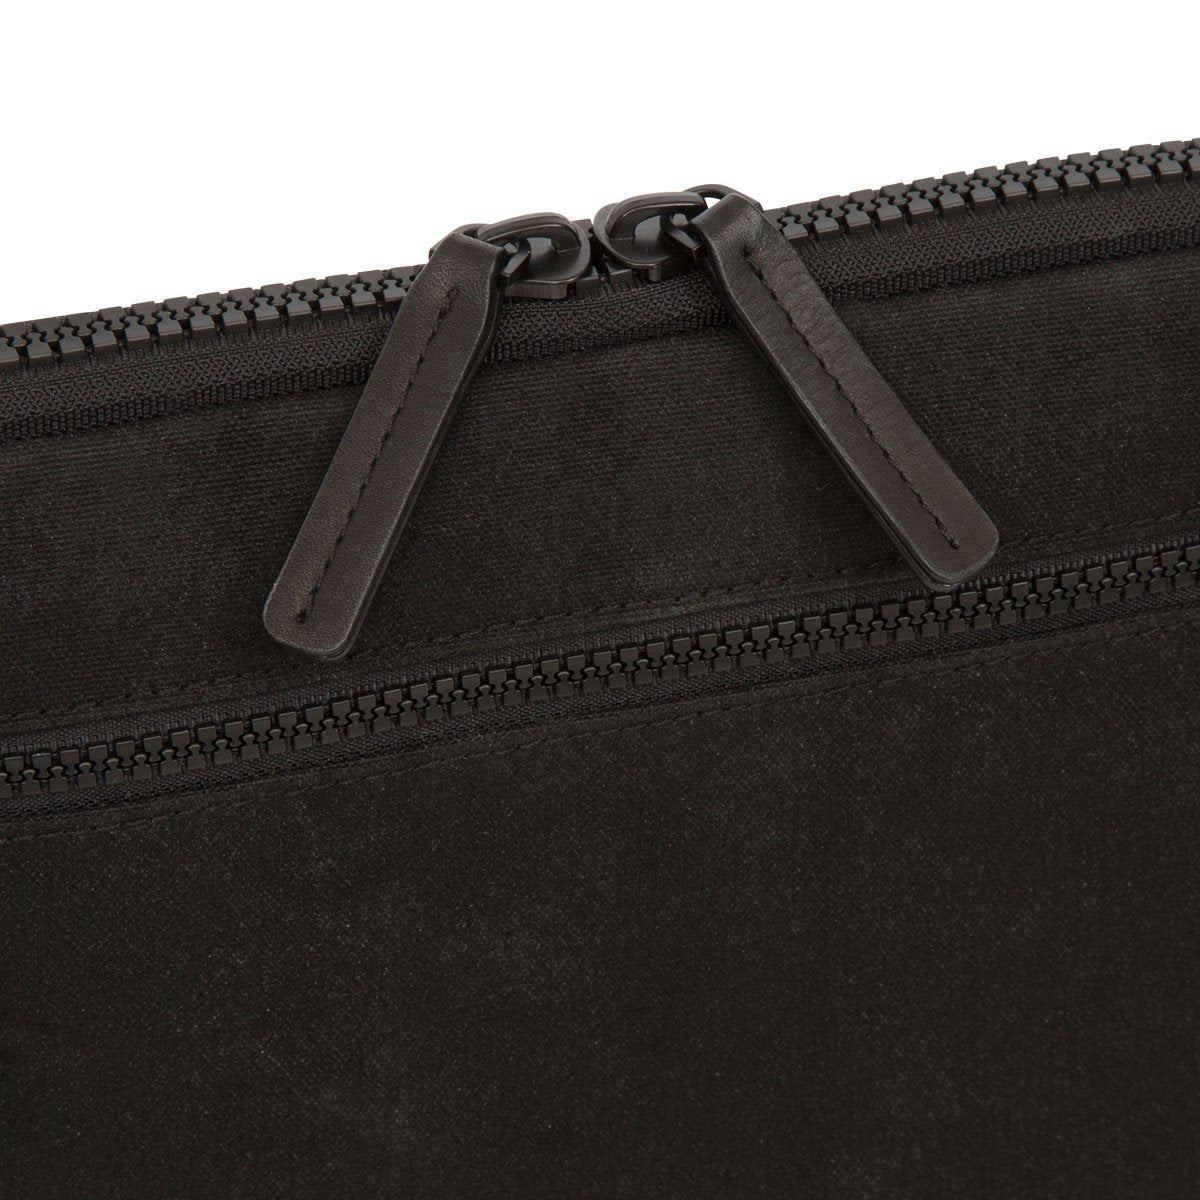 "Fulham 10.5"" Knomad Tablet Organiser Bag - Black Canvas – KNOMO"